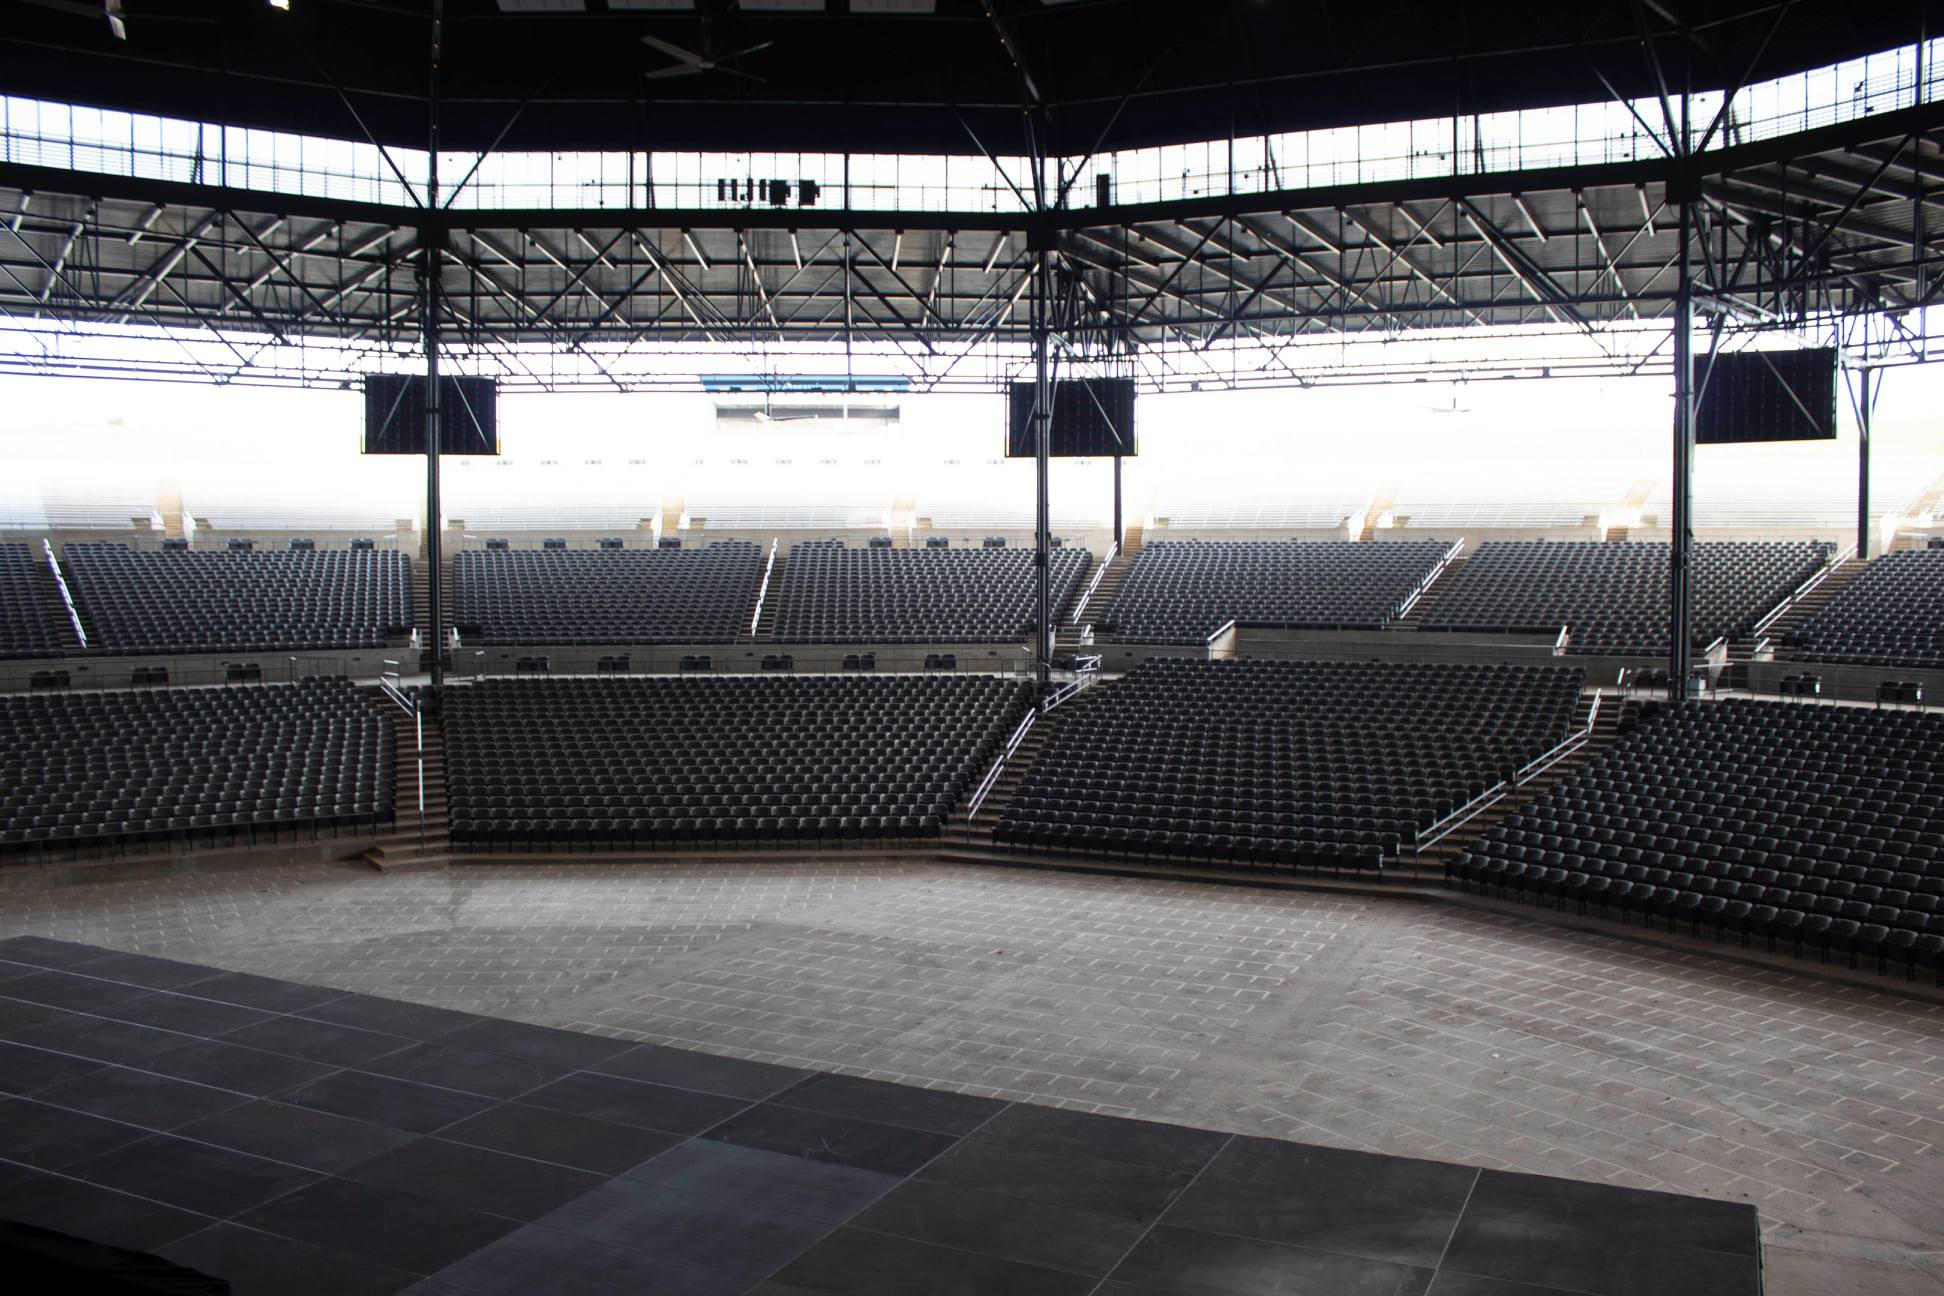 NEW American Family Insurance Amphitheater Renovation Complete